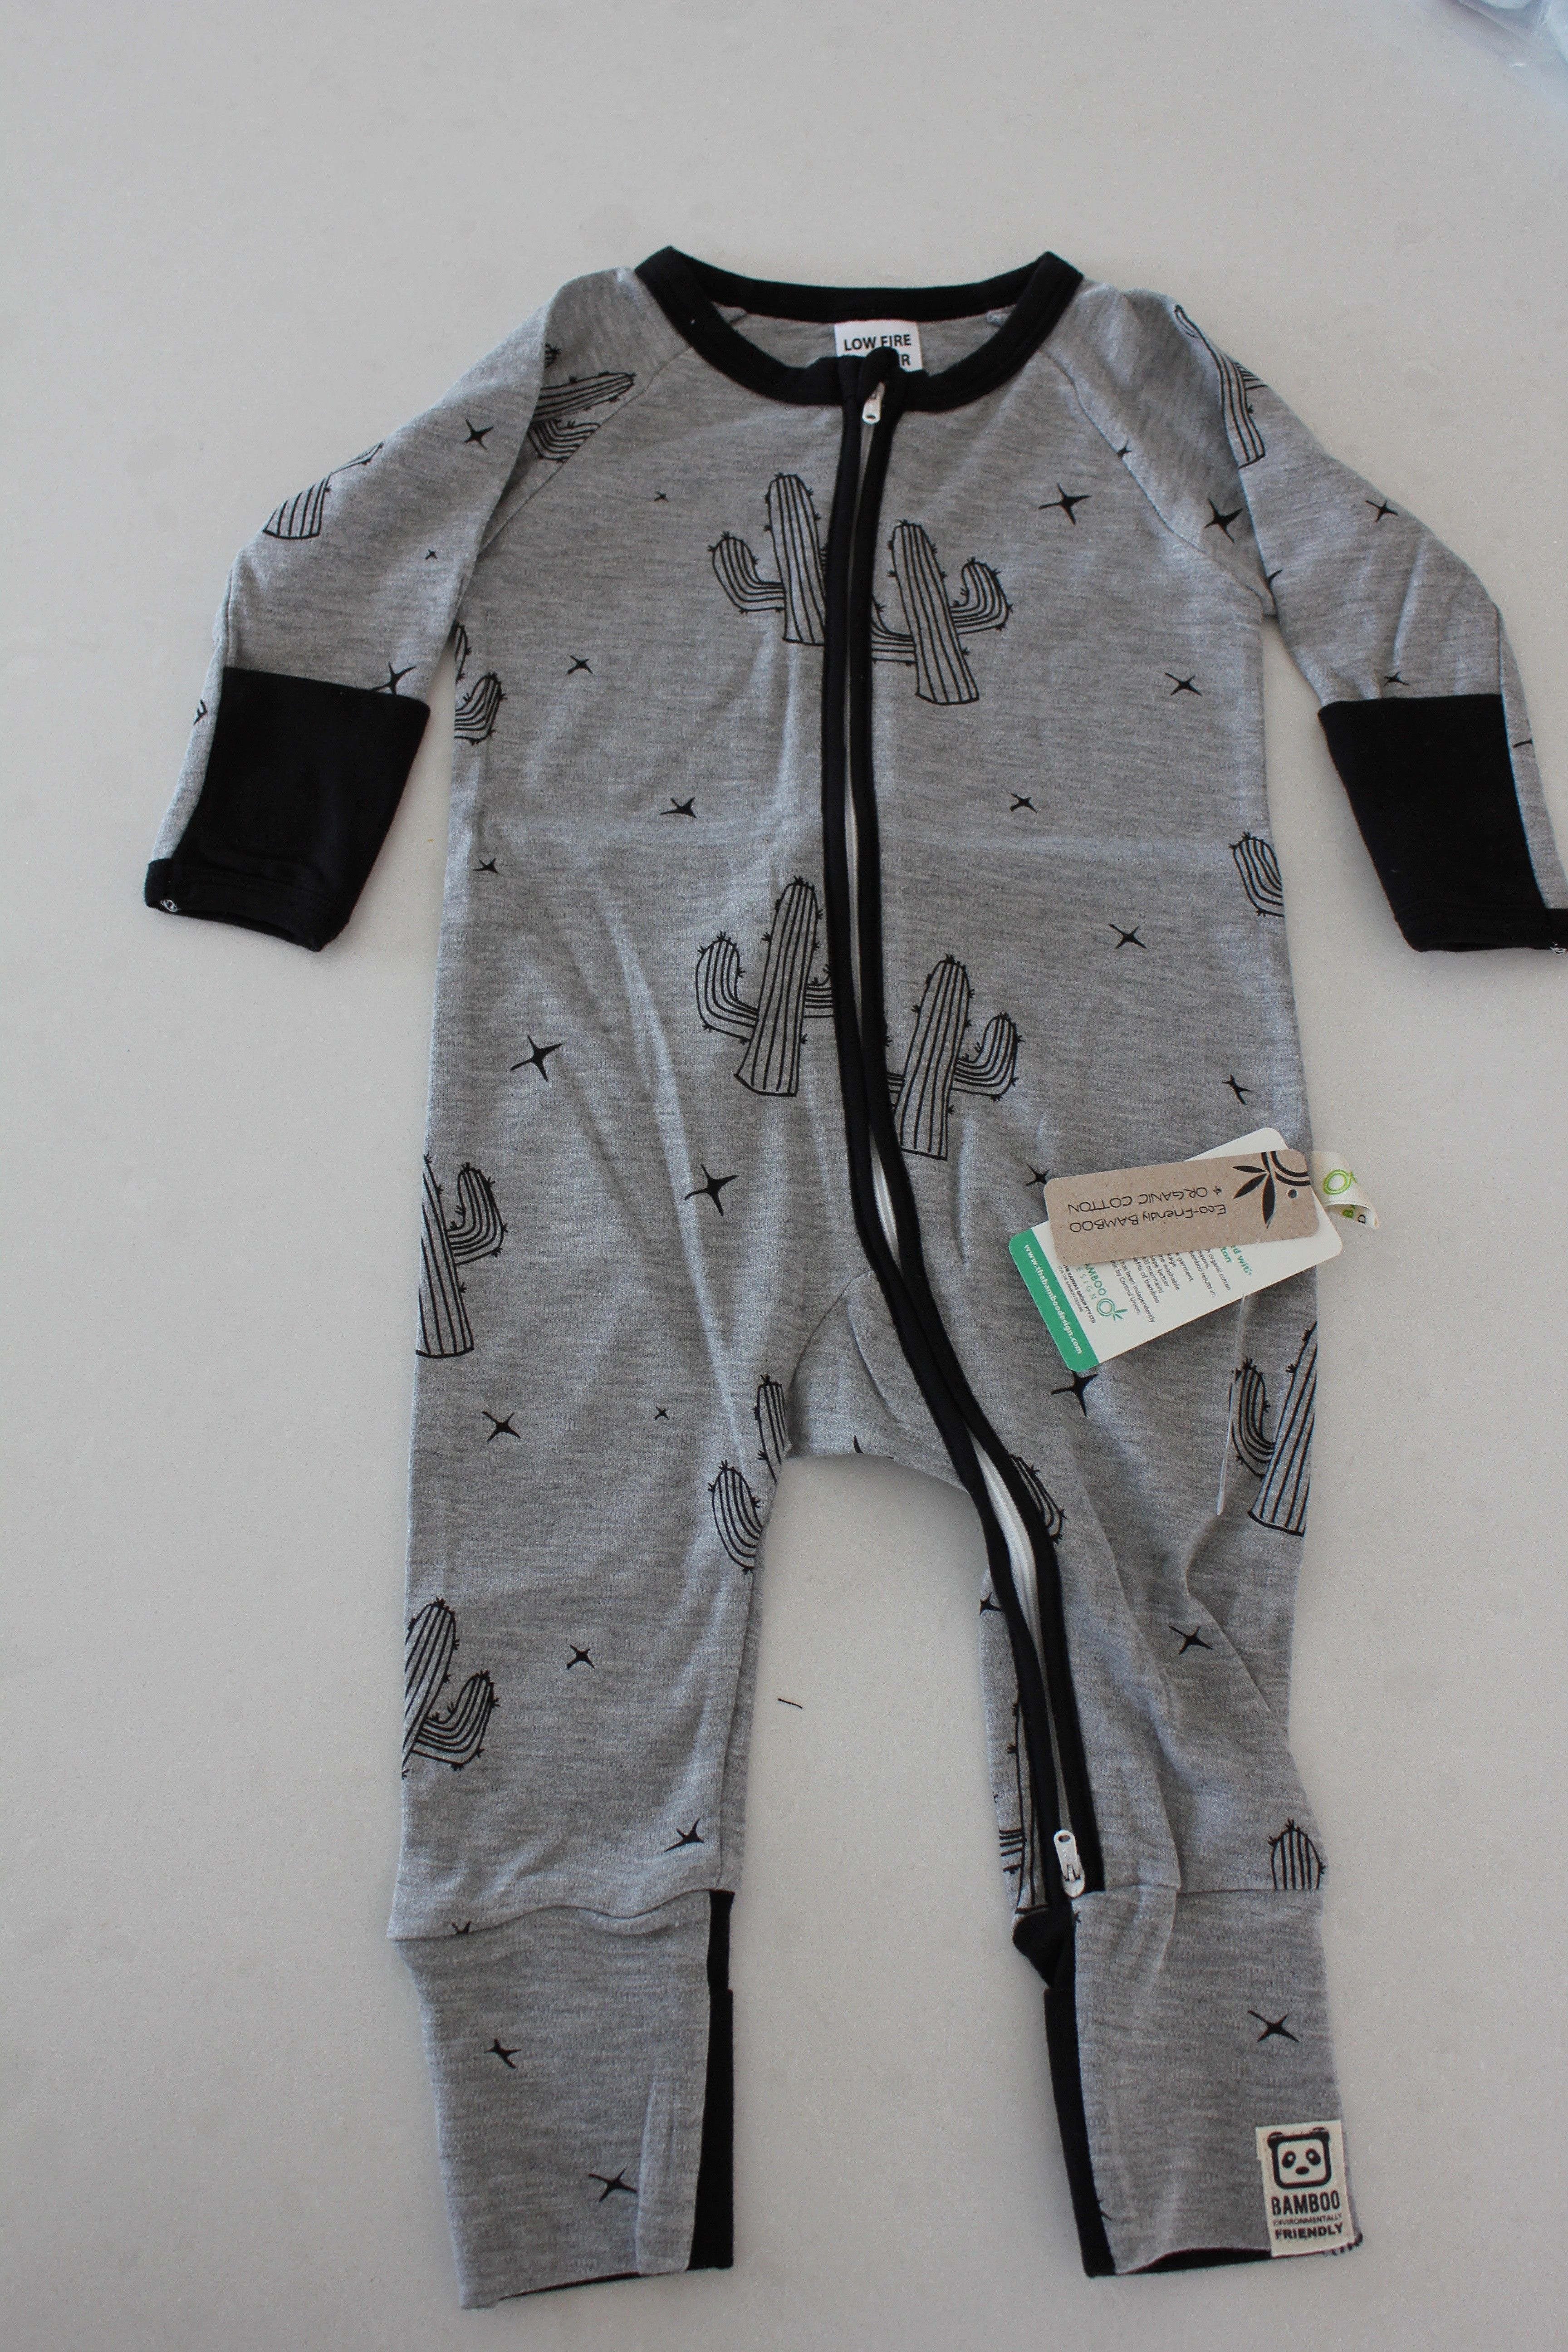 bbdb2917d Cactus Onesie Bamboo Cactus Onesie All Bamboo Design Products are ...